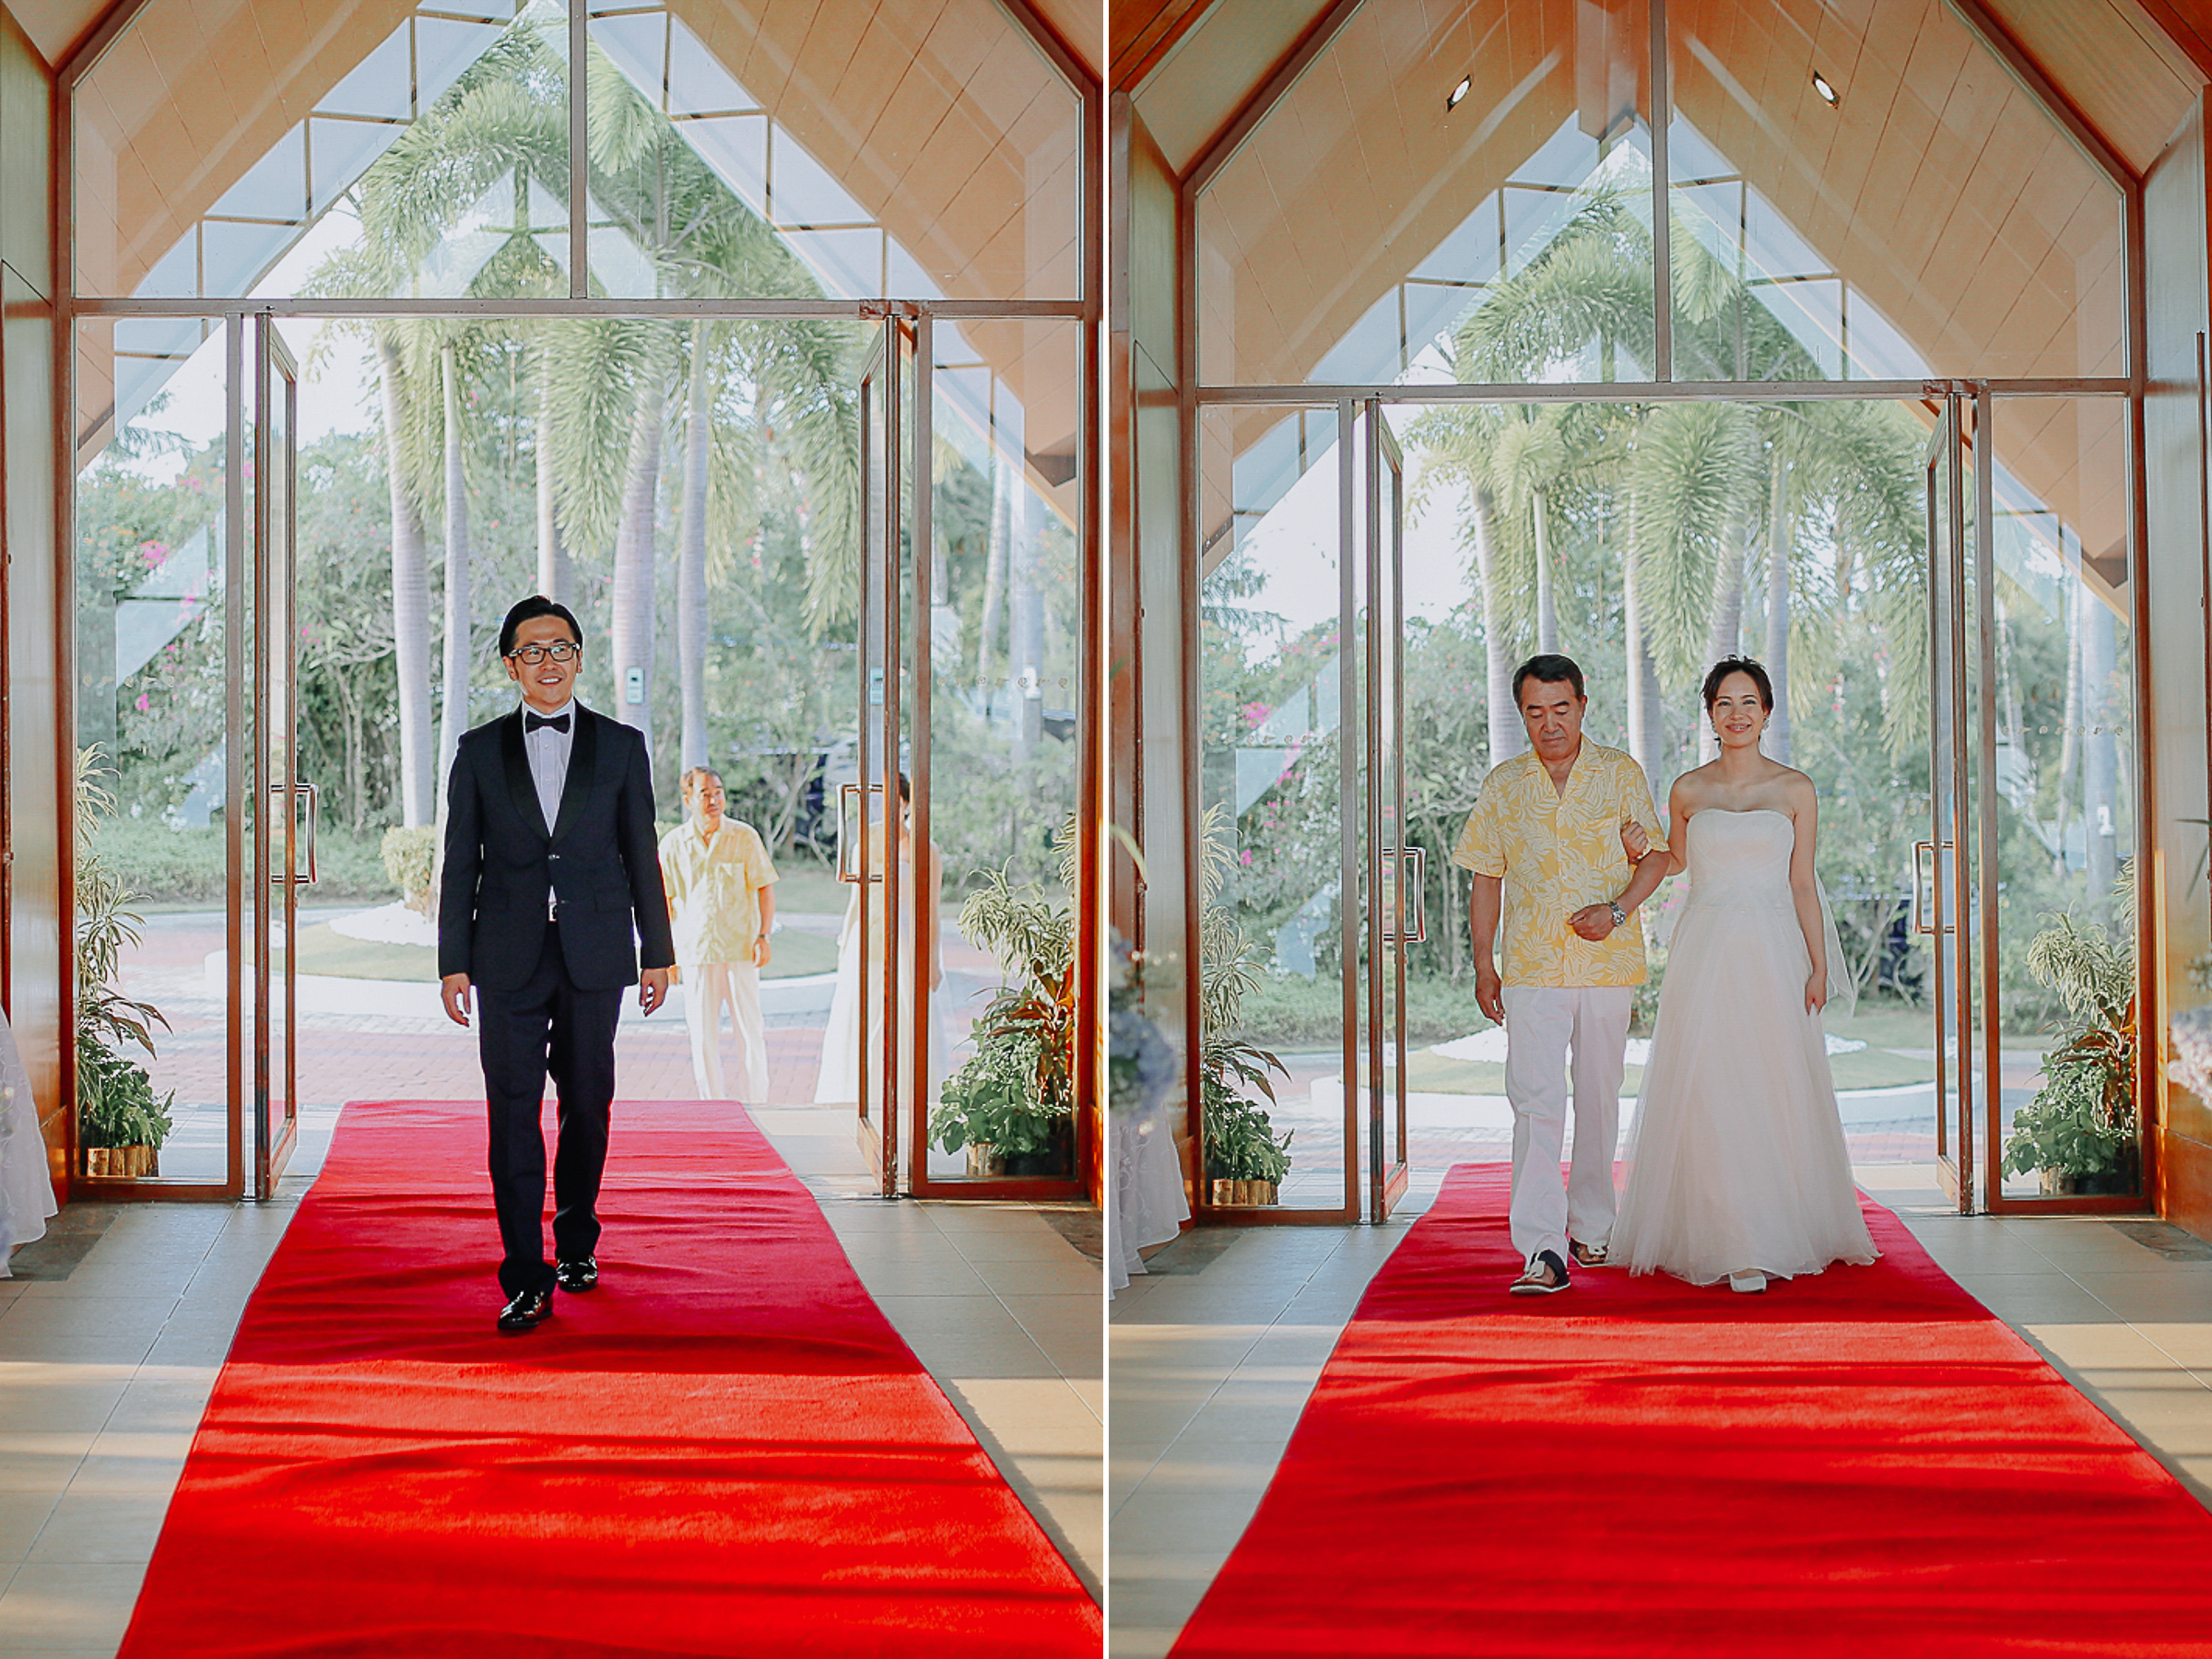 Shangri-la Mactan Cebu Destination Wedding